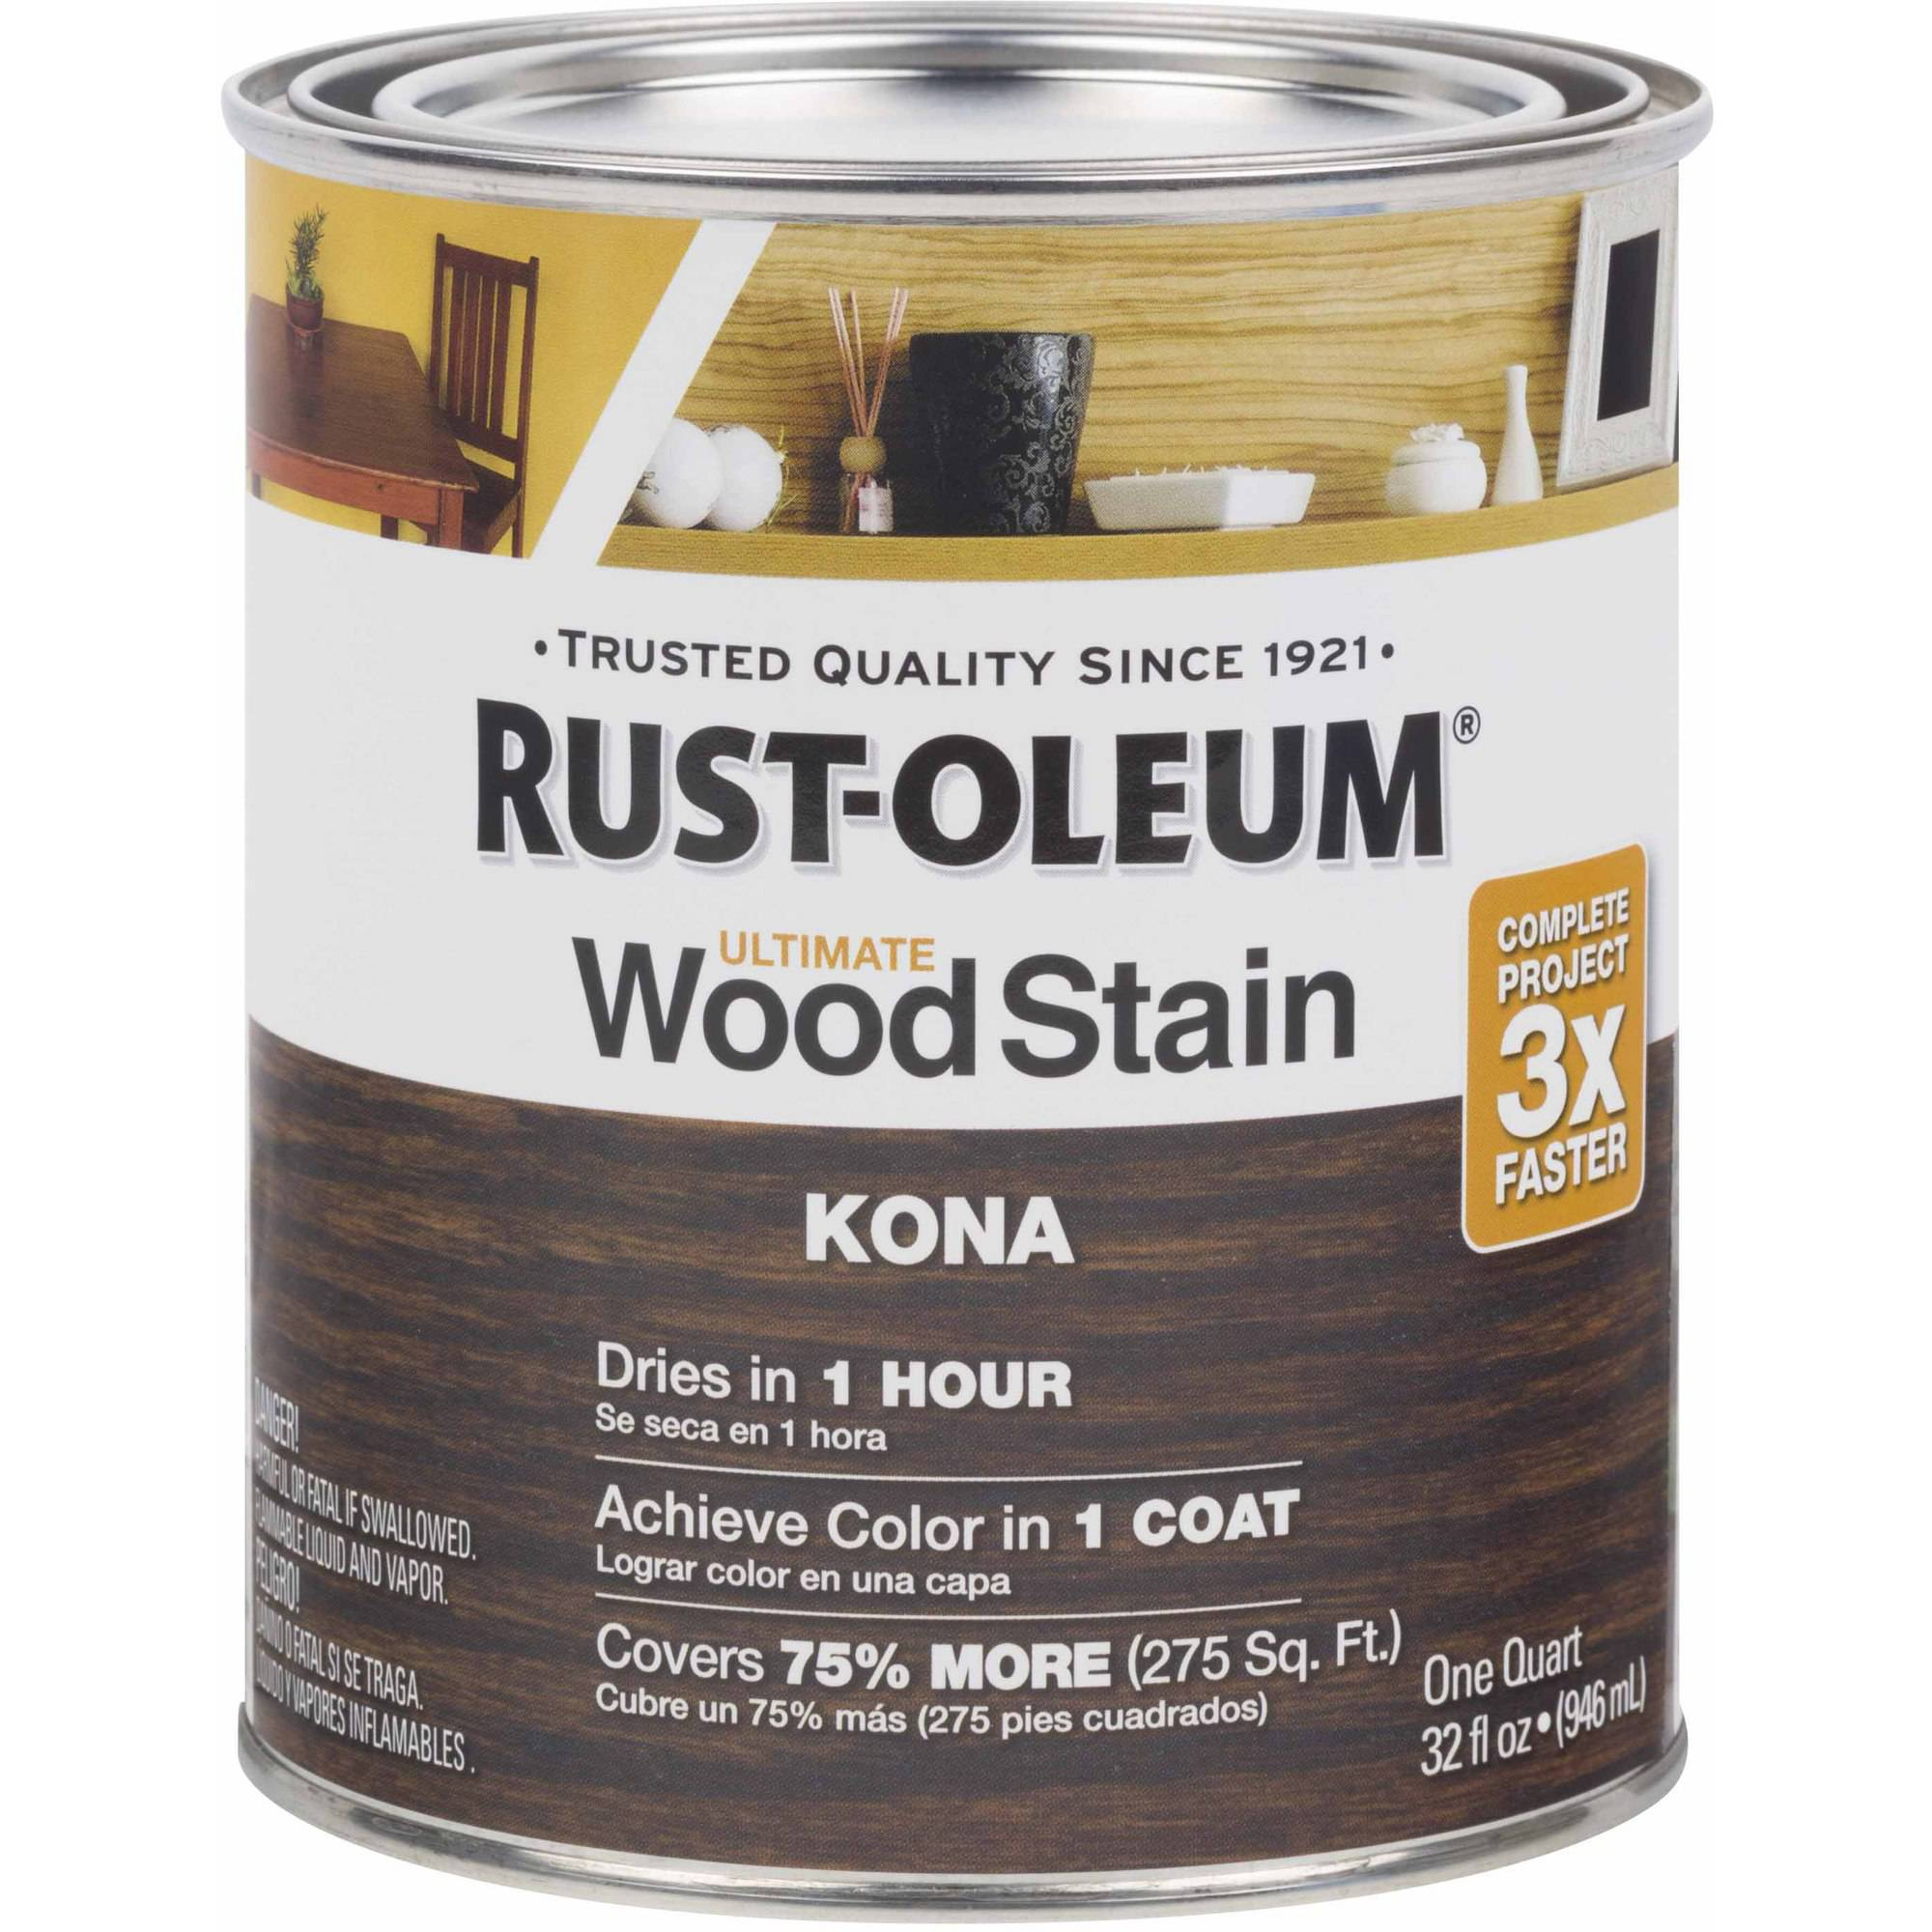 Rust-Oleum Ultimate Wood Stain Quart, Kona